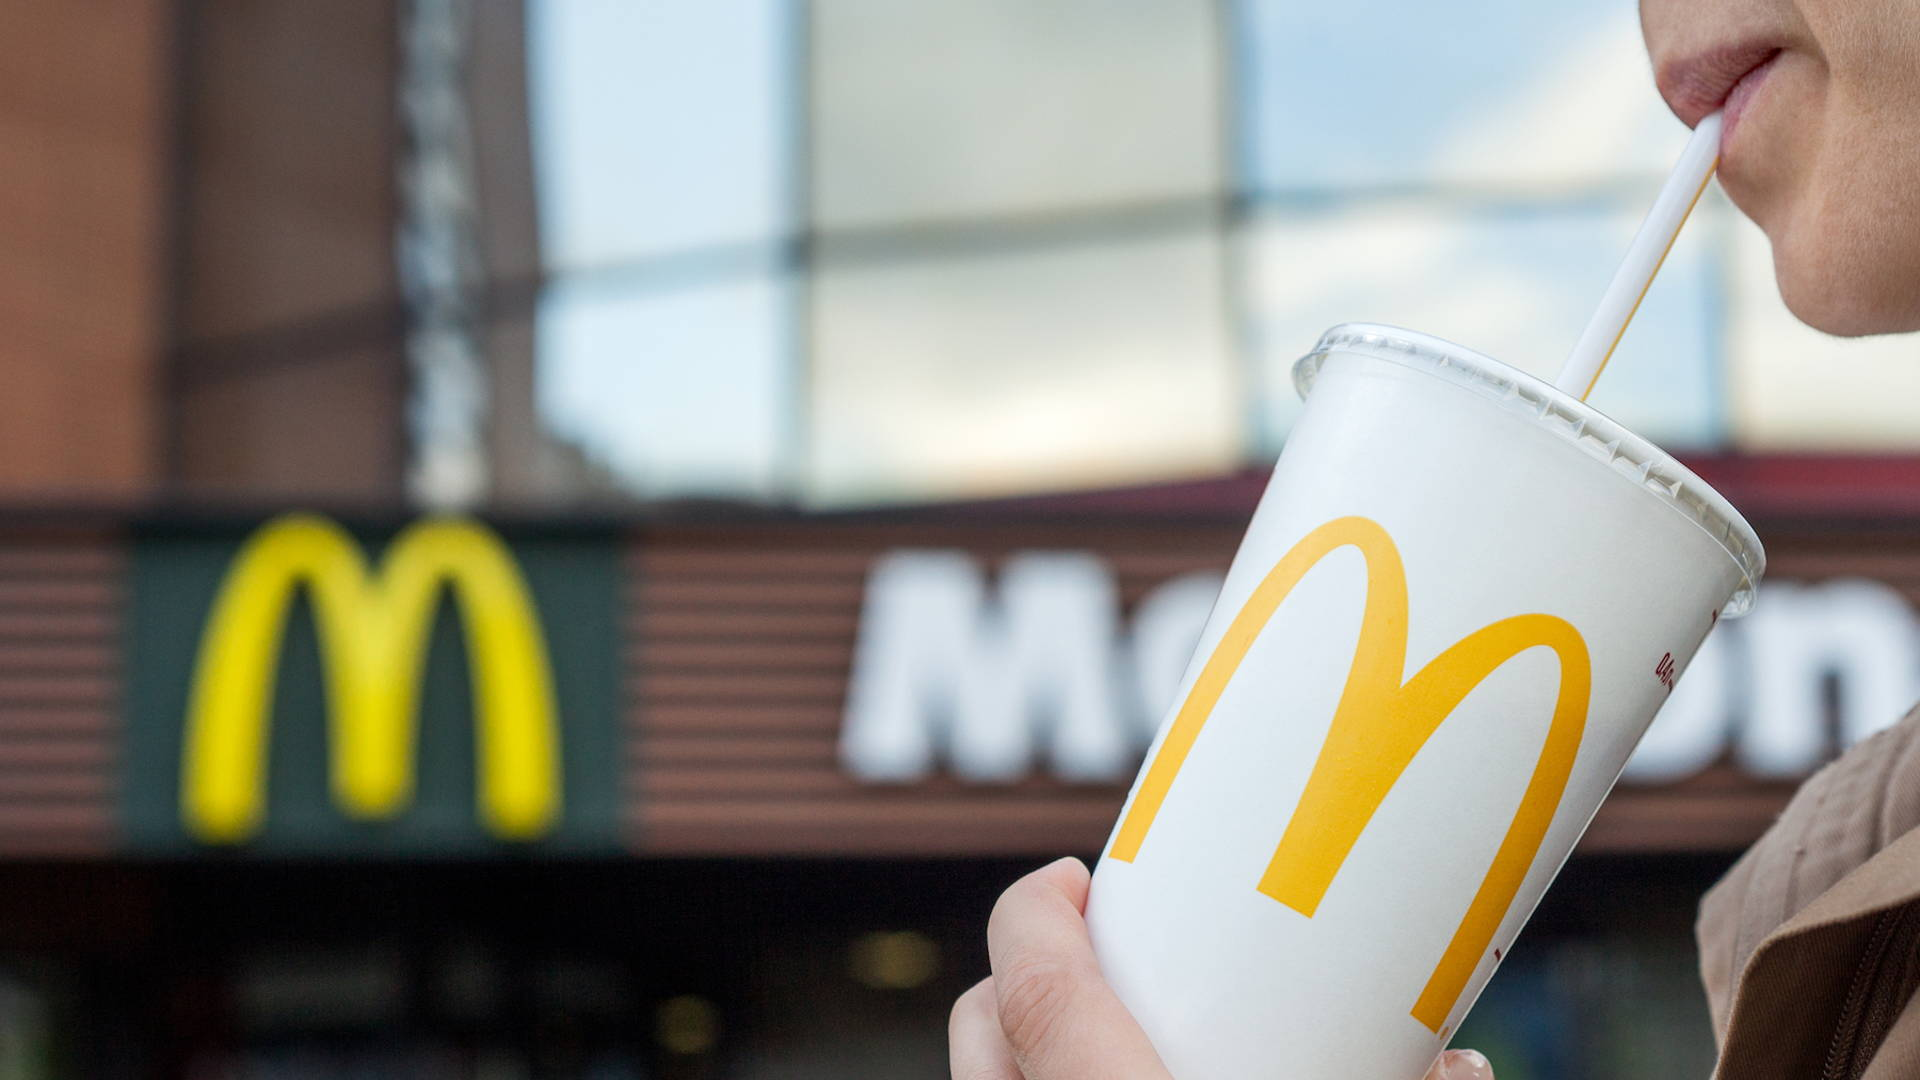 Golden Arches Go Green: McDonald's Going Fully Sustainable by 2025